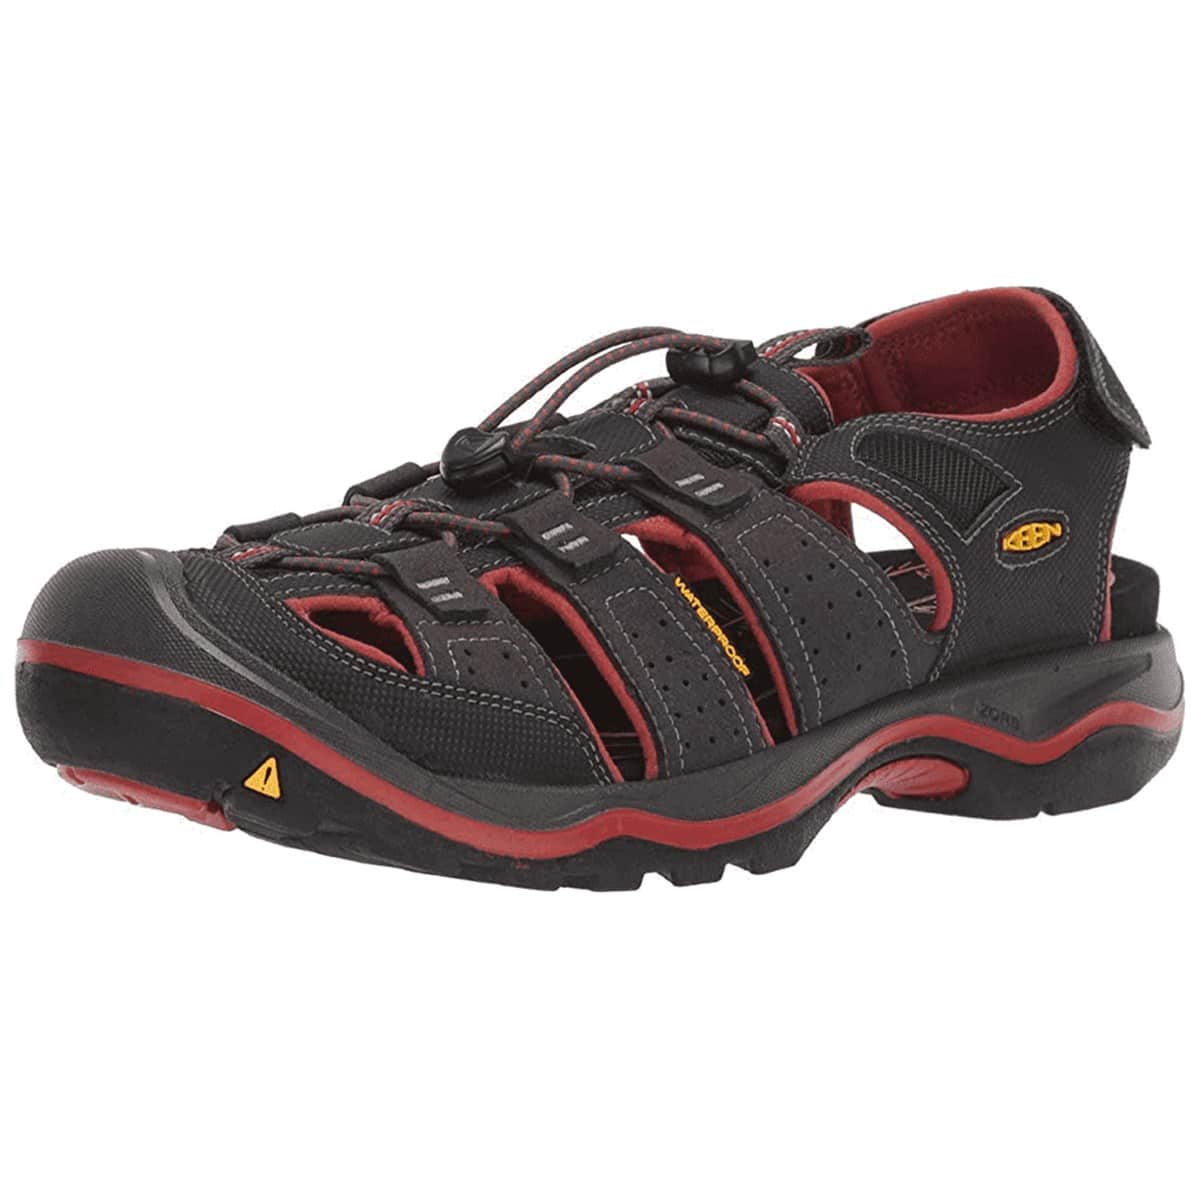 Keen Men's Rialto II H2 Sandals - $39.99 + Shipping at Sun and Ski